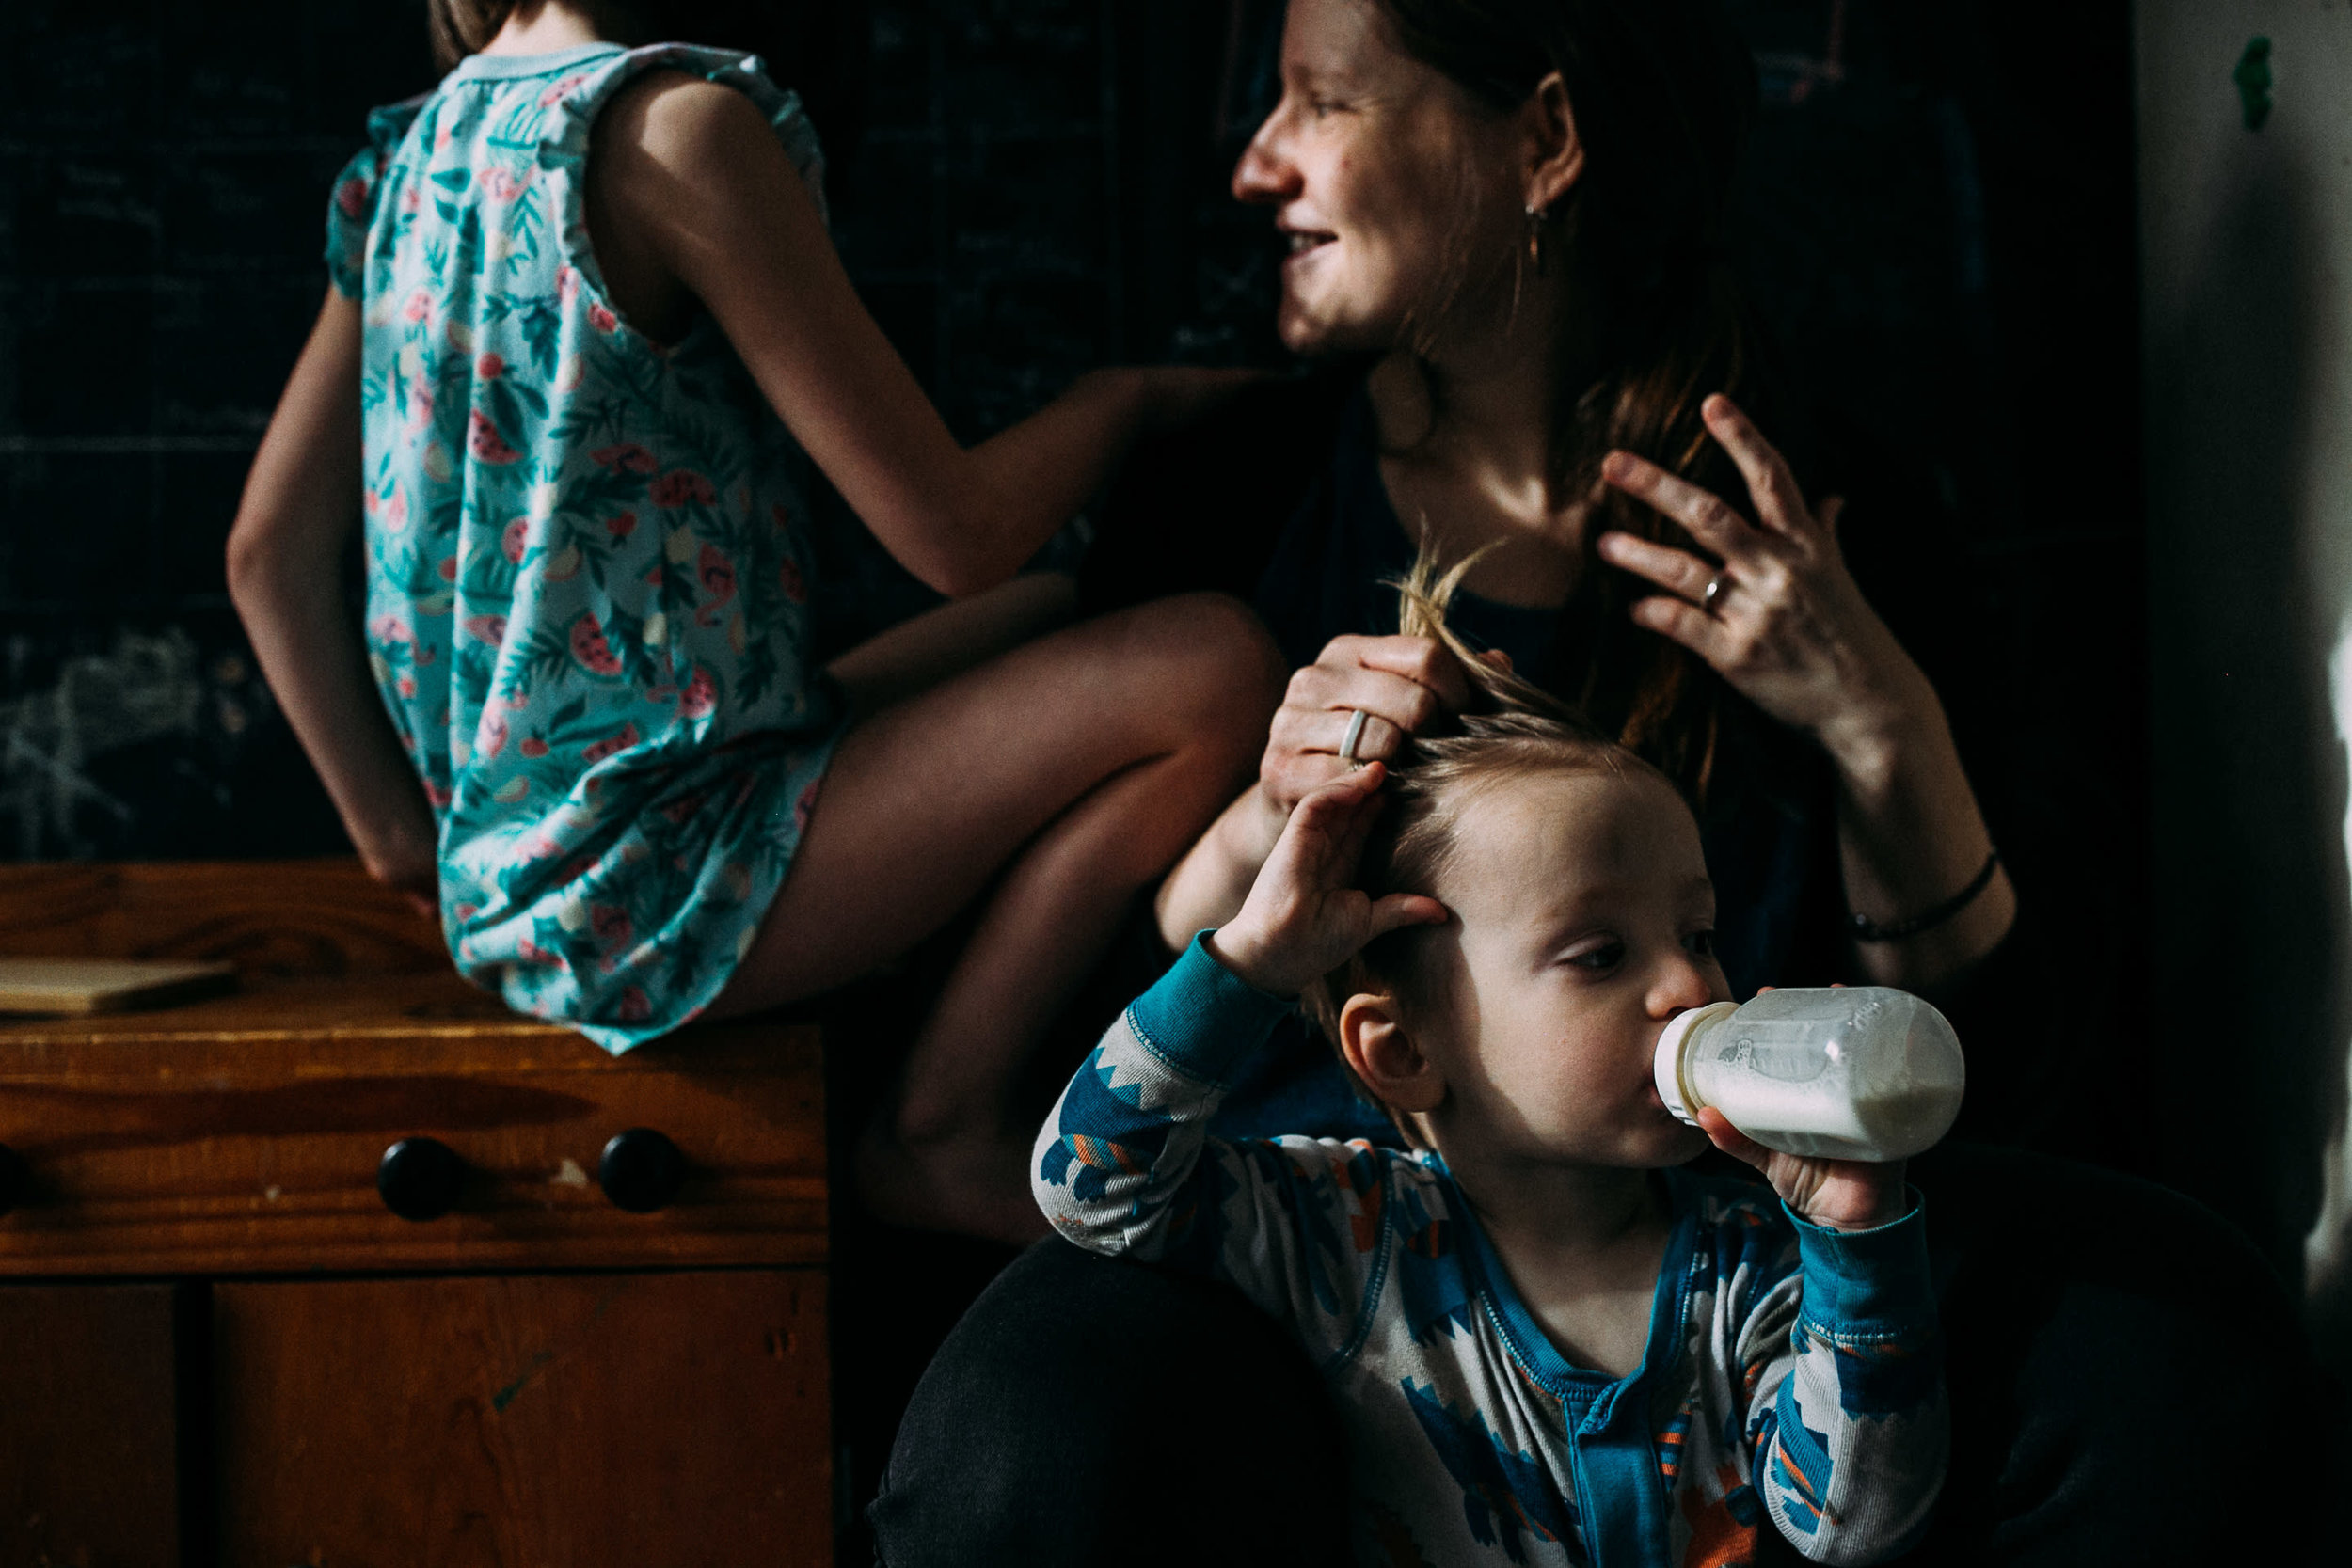 A mother combs her fingers through her toddler's hair while he drinks a bottle and another child sits nearby